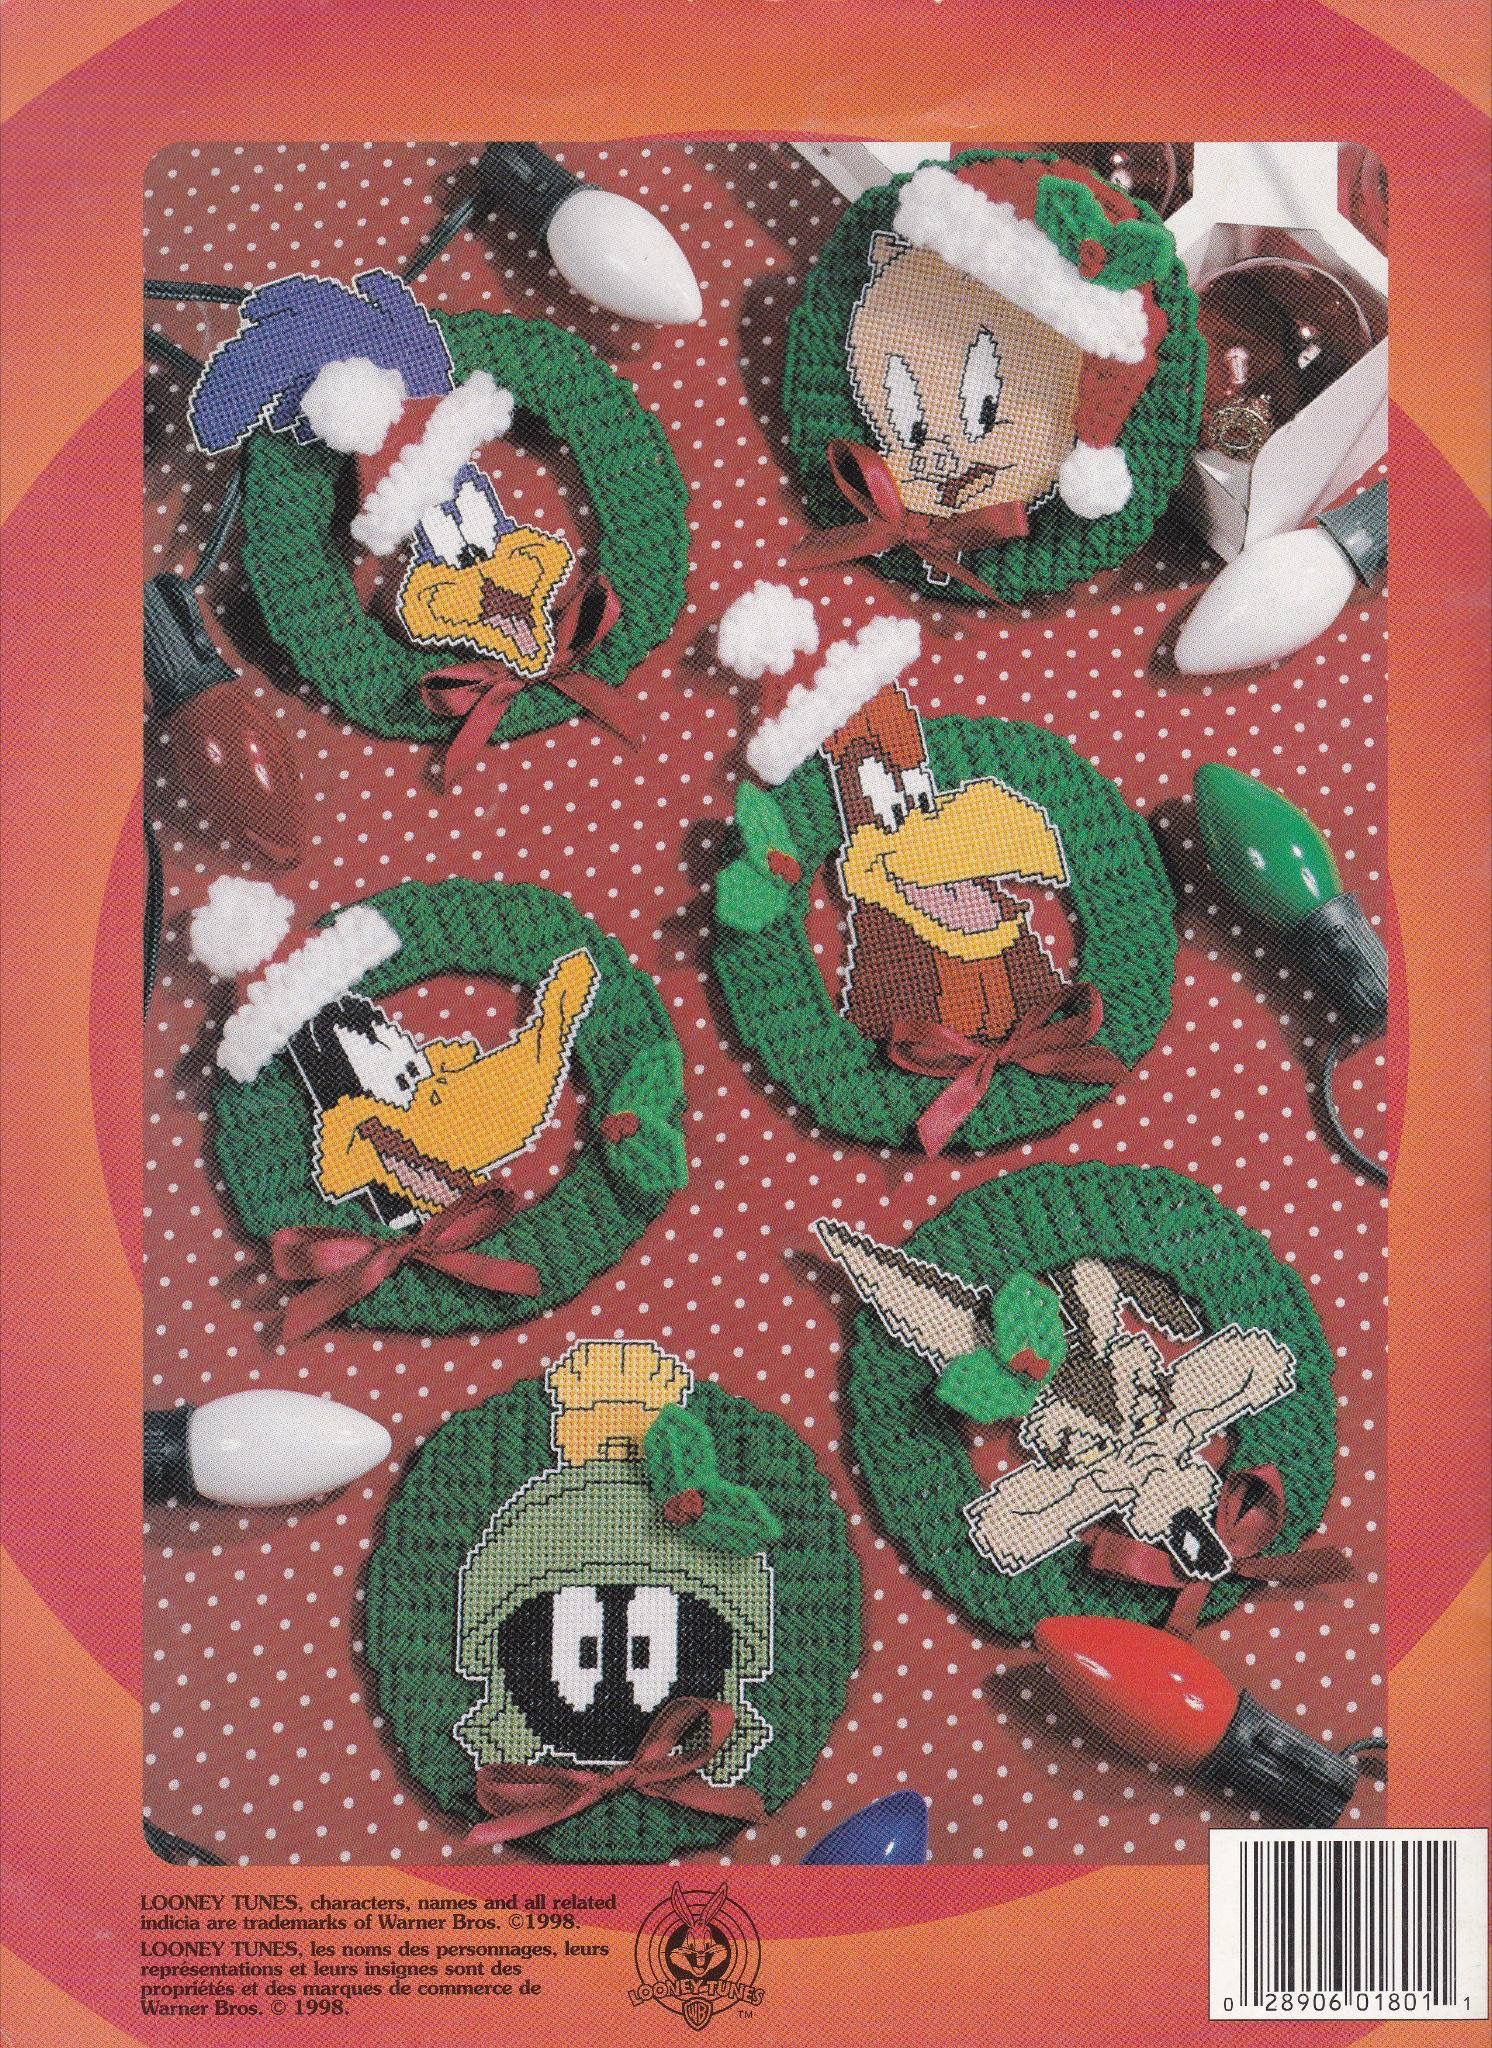 Looney Tunes Ornaments